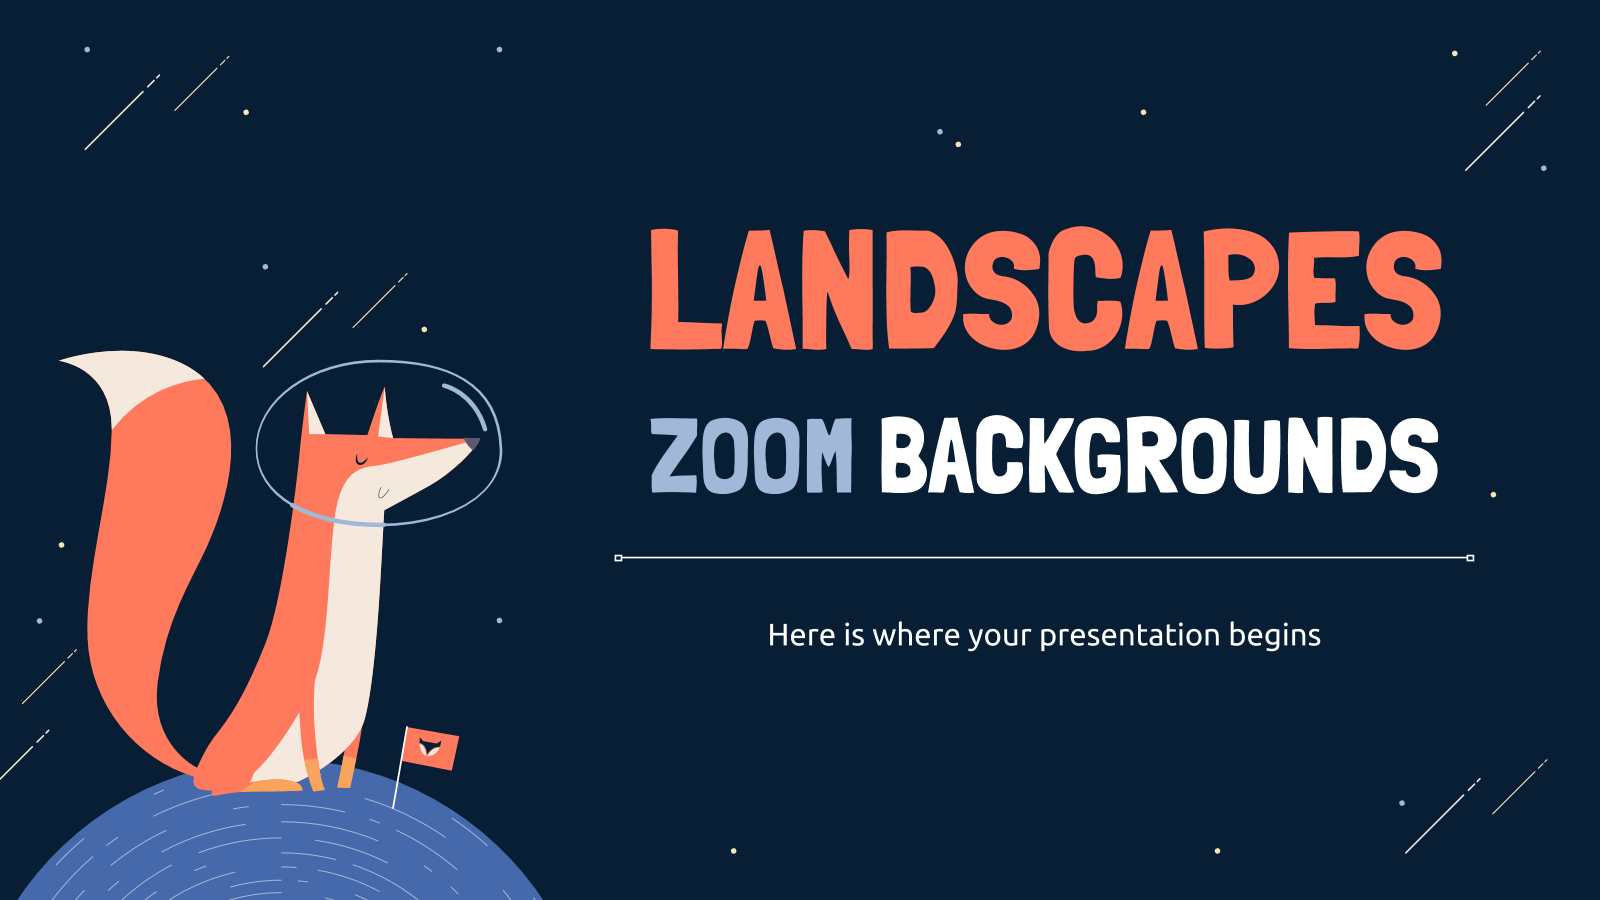 Landscapes: Zoom Backgrounds presentation template